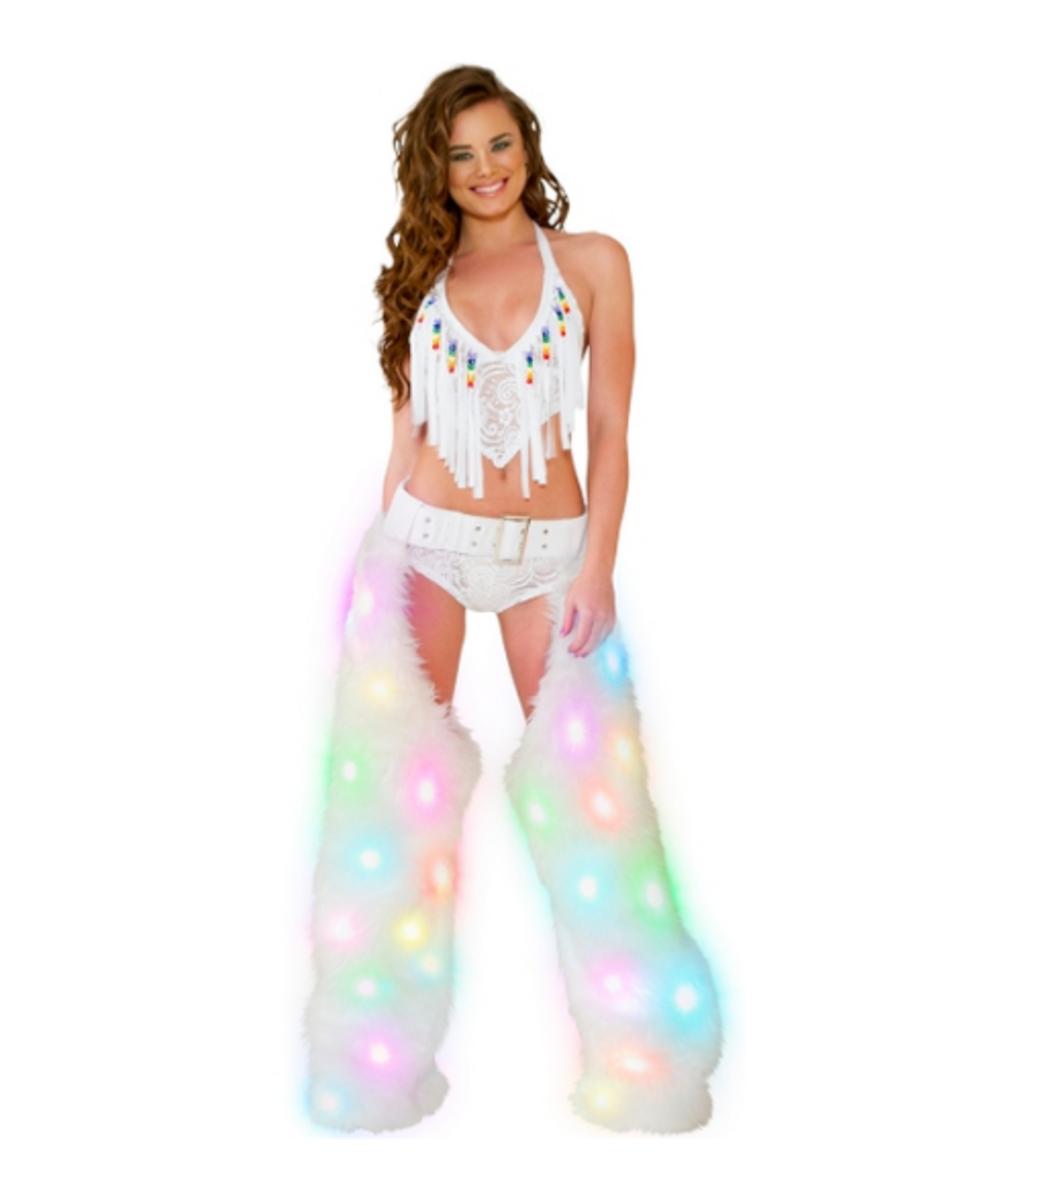 The Raver Cowgirl